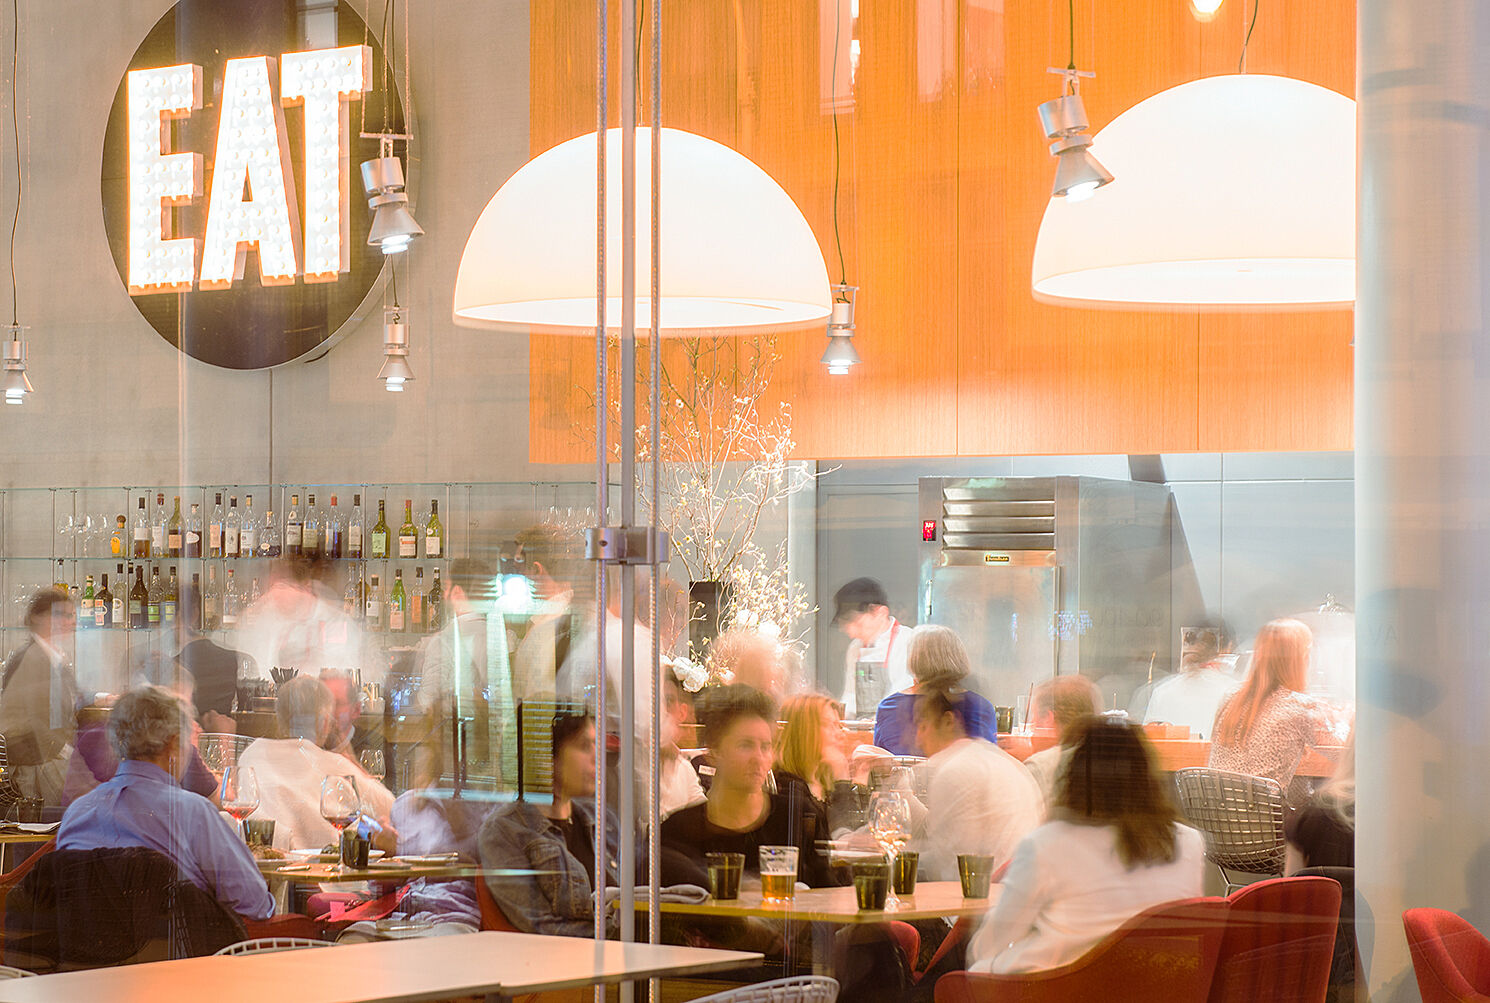 A lot of people seated in a time lapse, eating at a restaurant in front of a sign that says EAT, with bright lights and an orange wall.